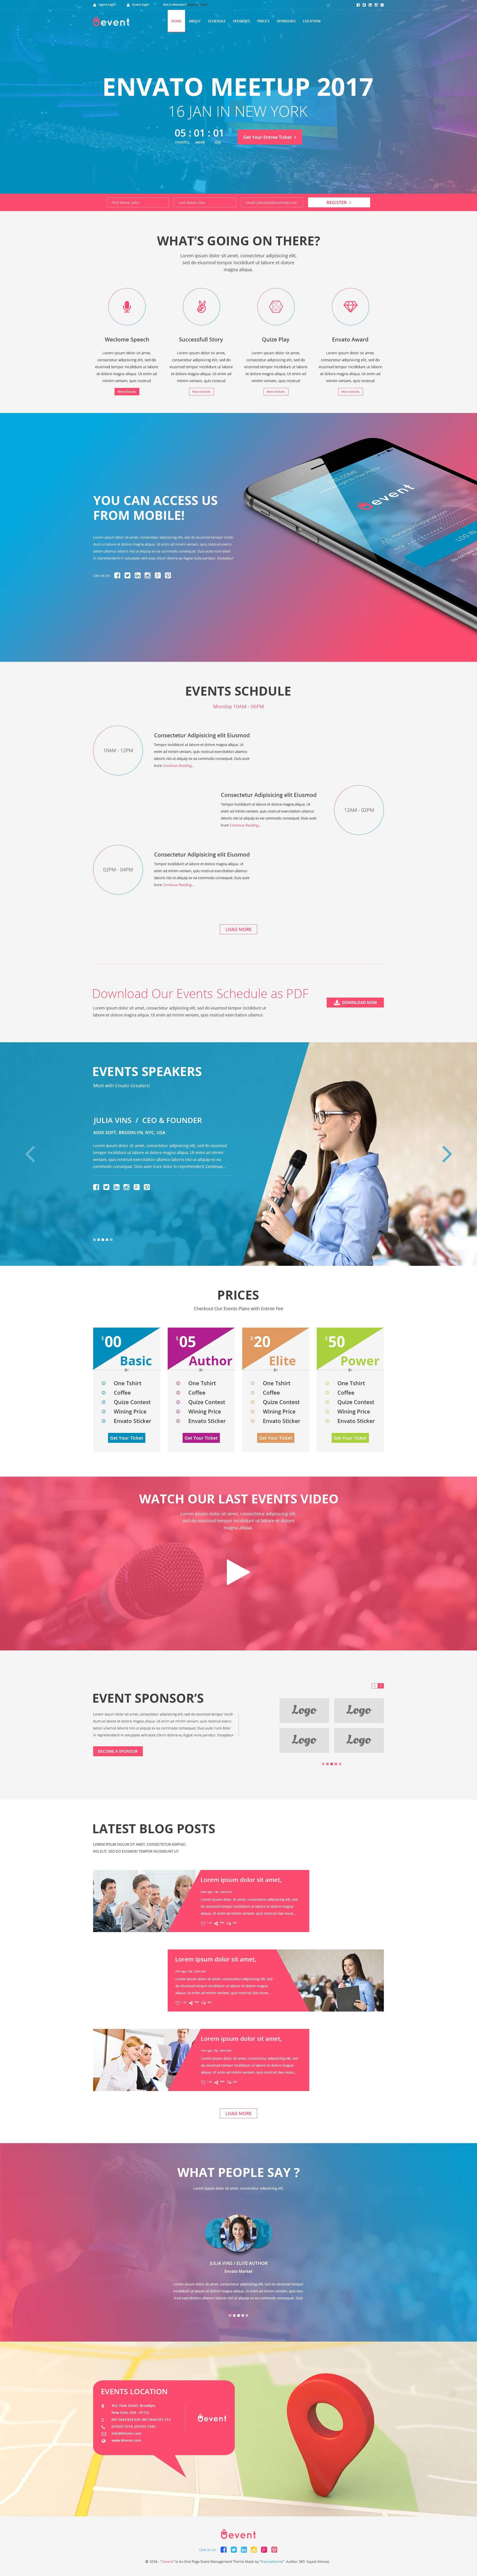 uevent one page event management psd template by theonetheme